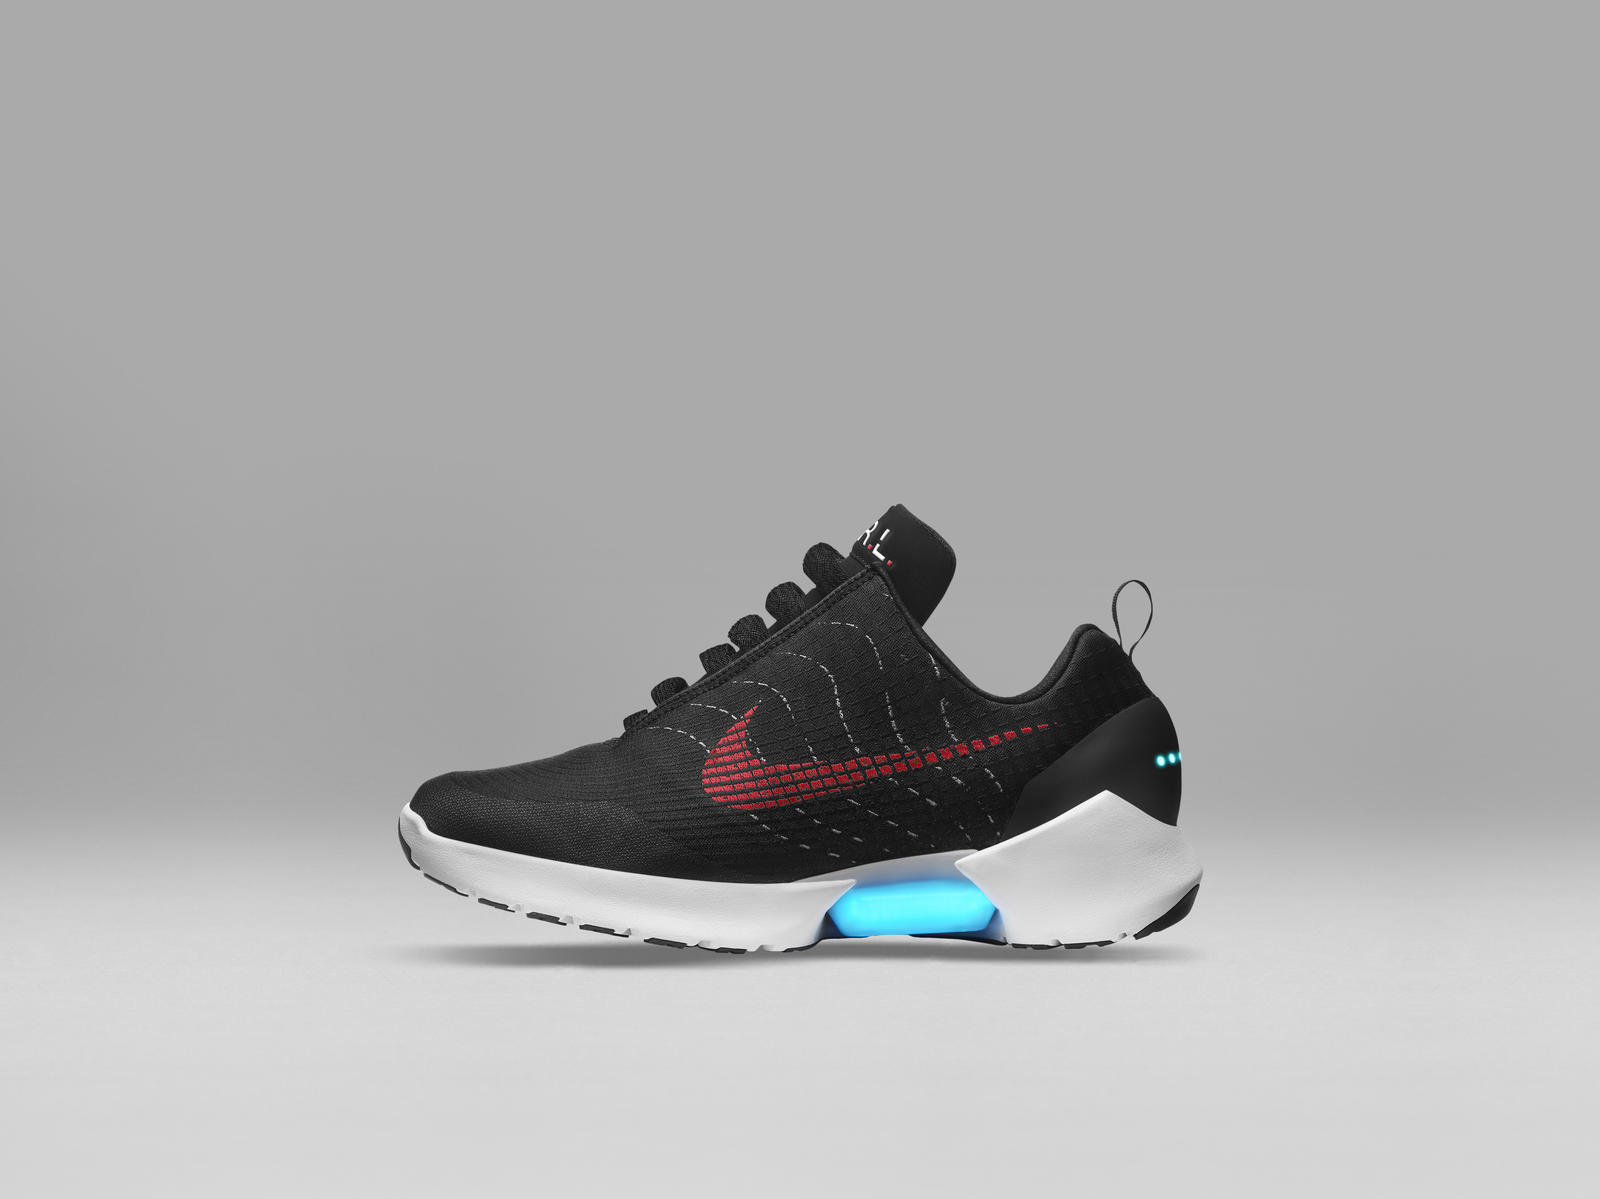 How to Get the Nike HyperAdapt 1.0 - Nike News 56bc9df0c9